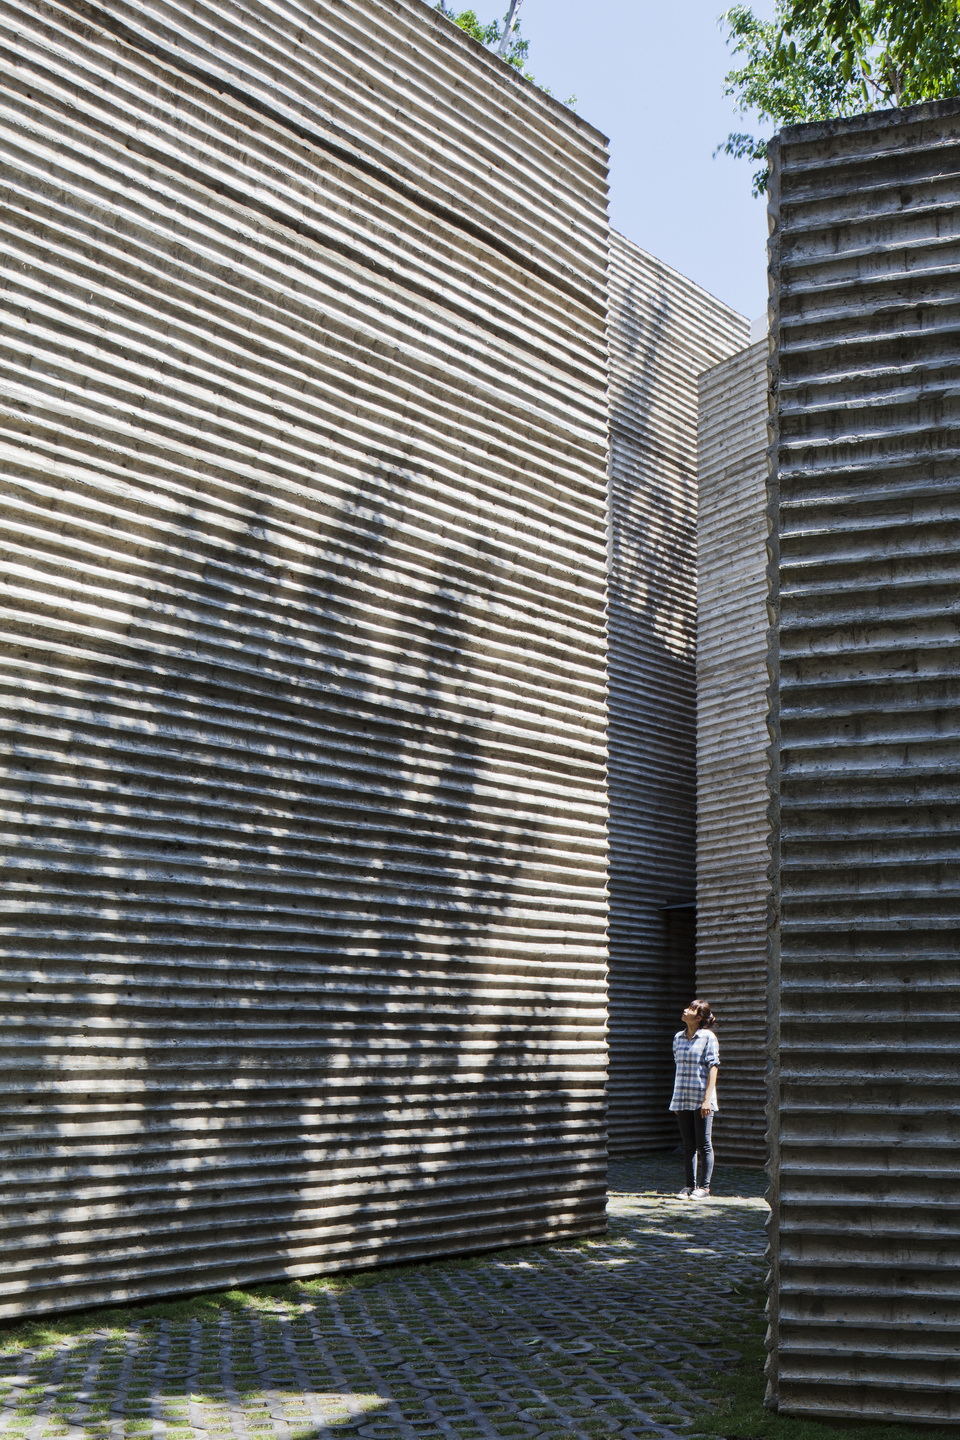 House for Trees / Vo Trong Nghia Architects (4)